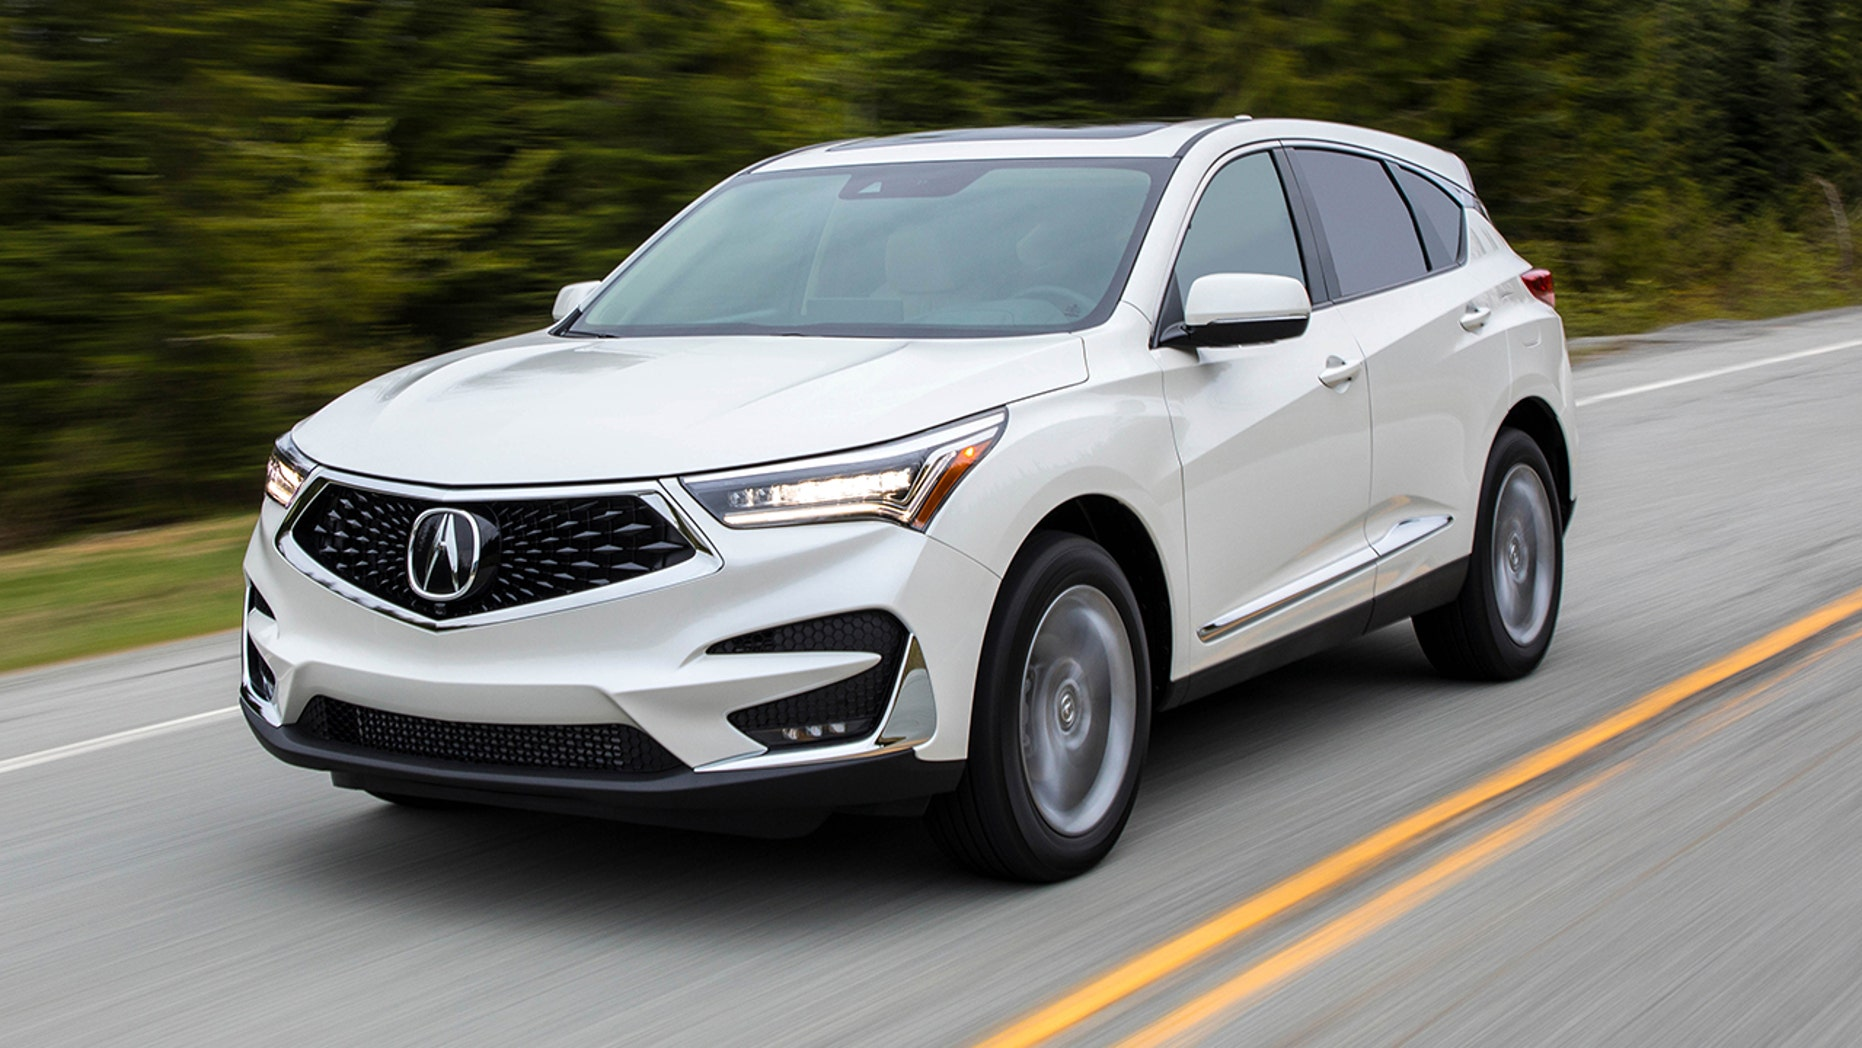 2019 Acura Rdx Test Drive Back To The Future Fox News